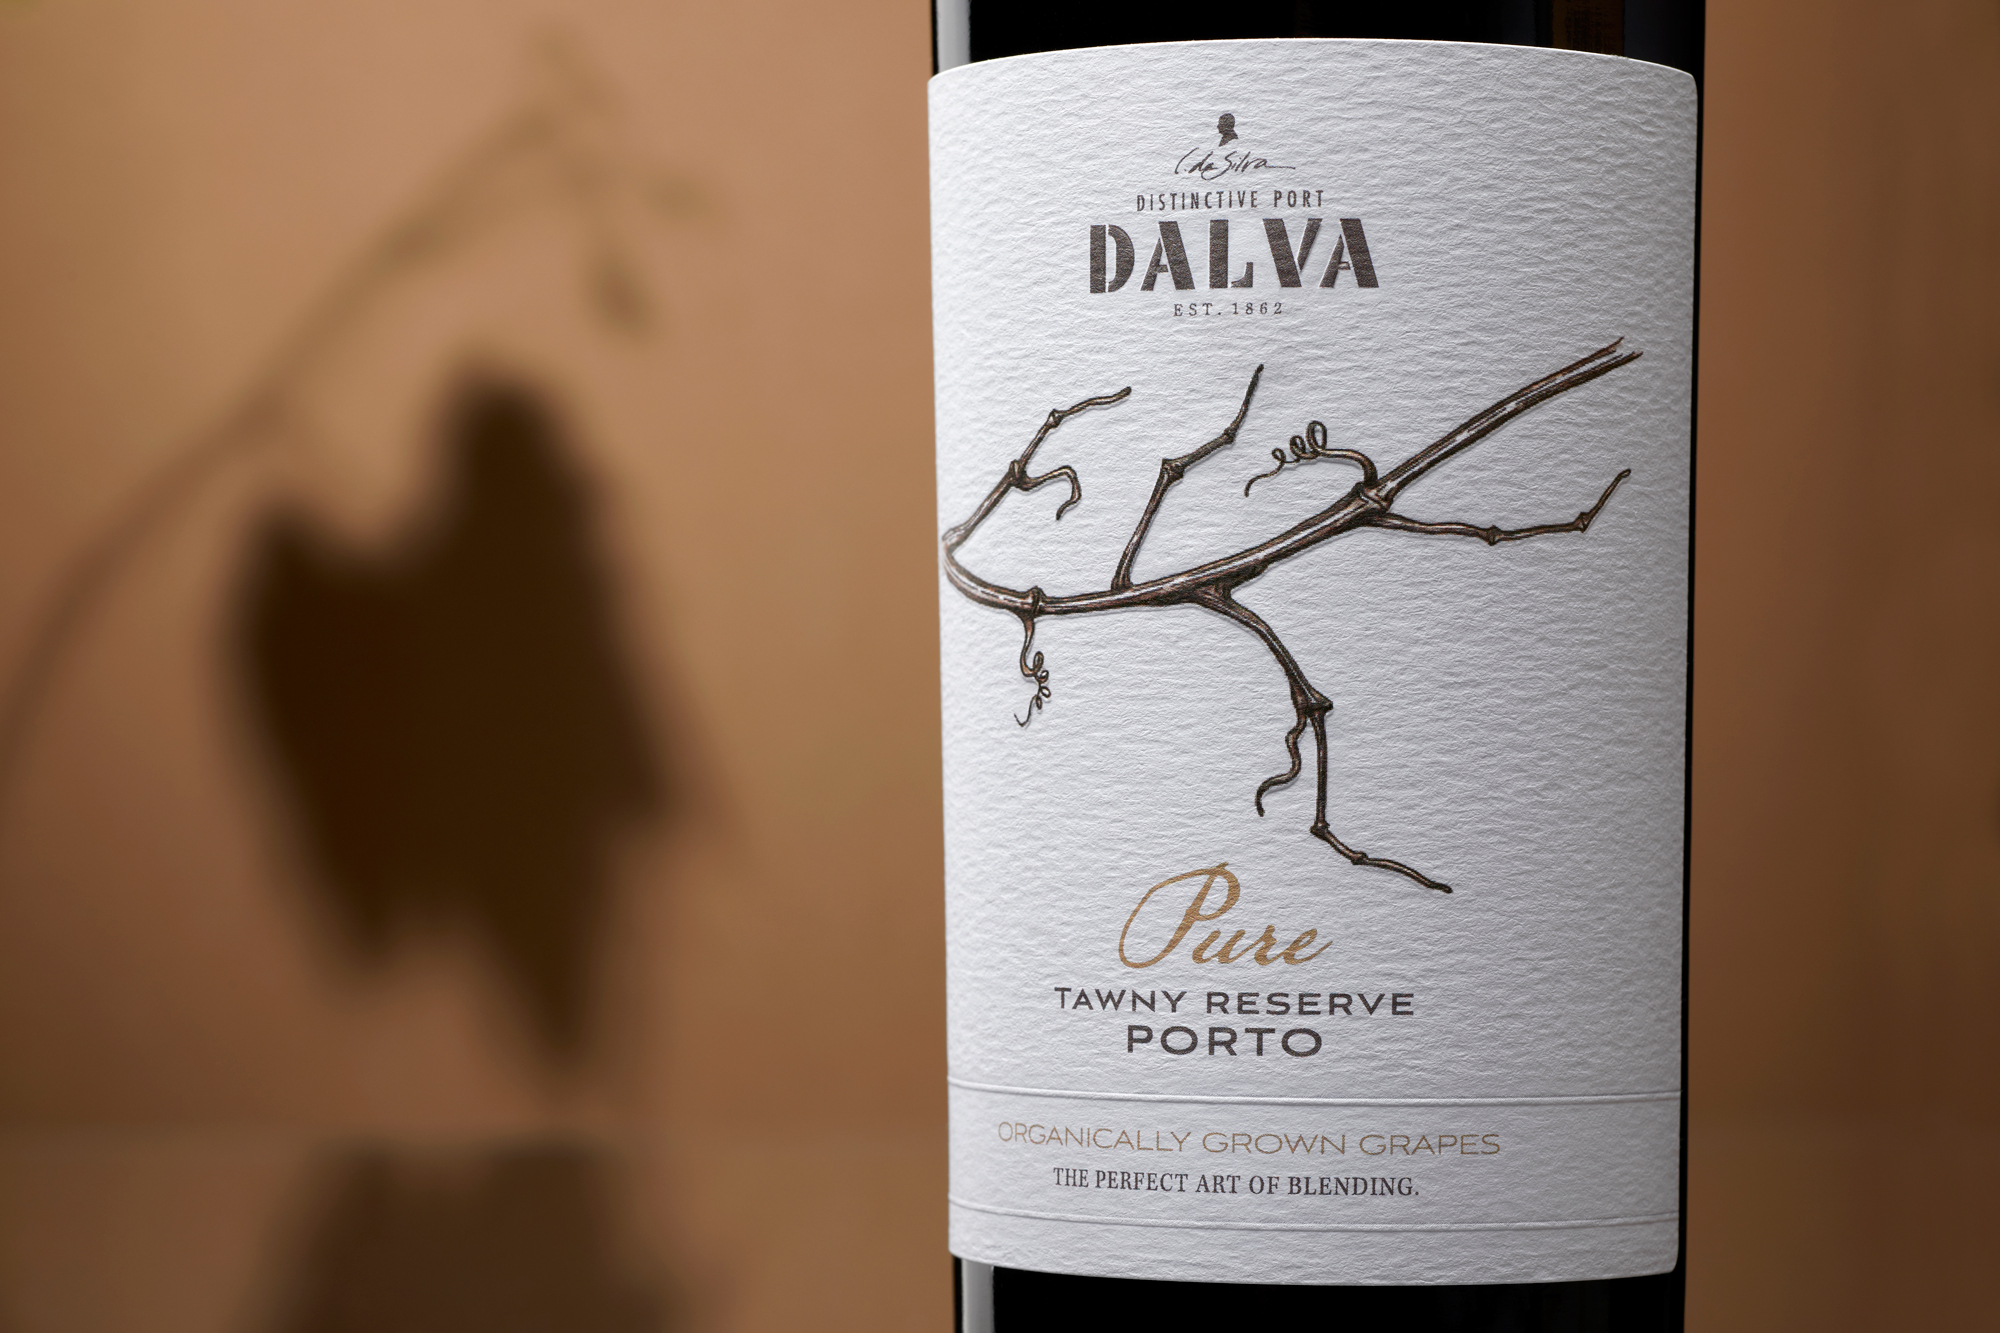 Dalva Pure Tawny Reserve Designed by Omdesign